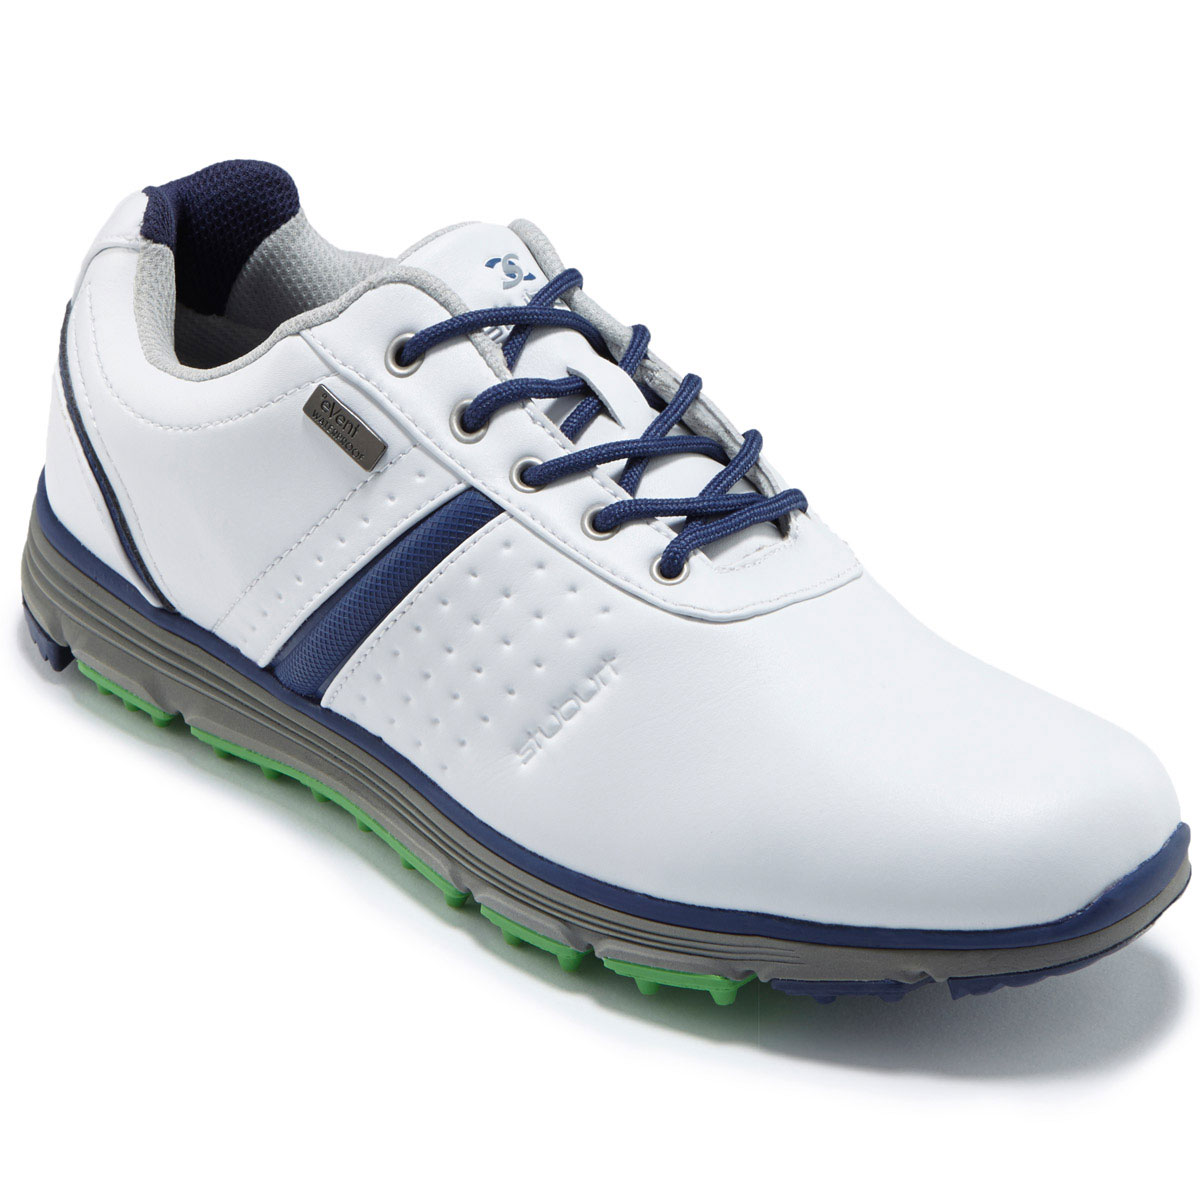 Stuburt Cyclone Golf Shoes